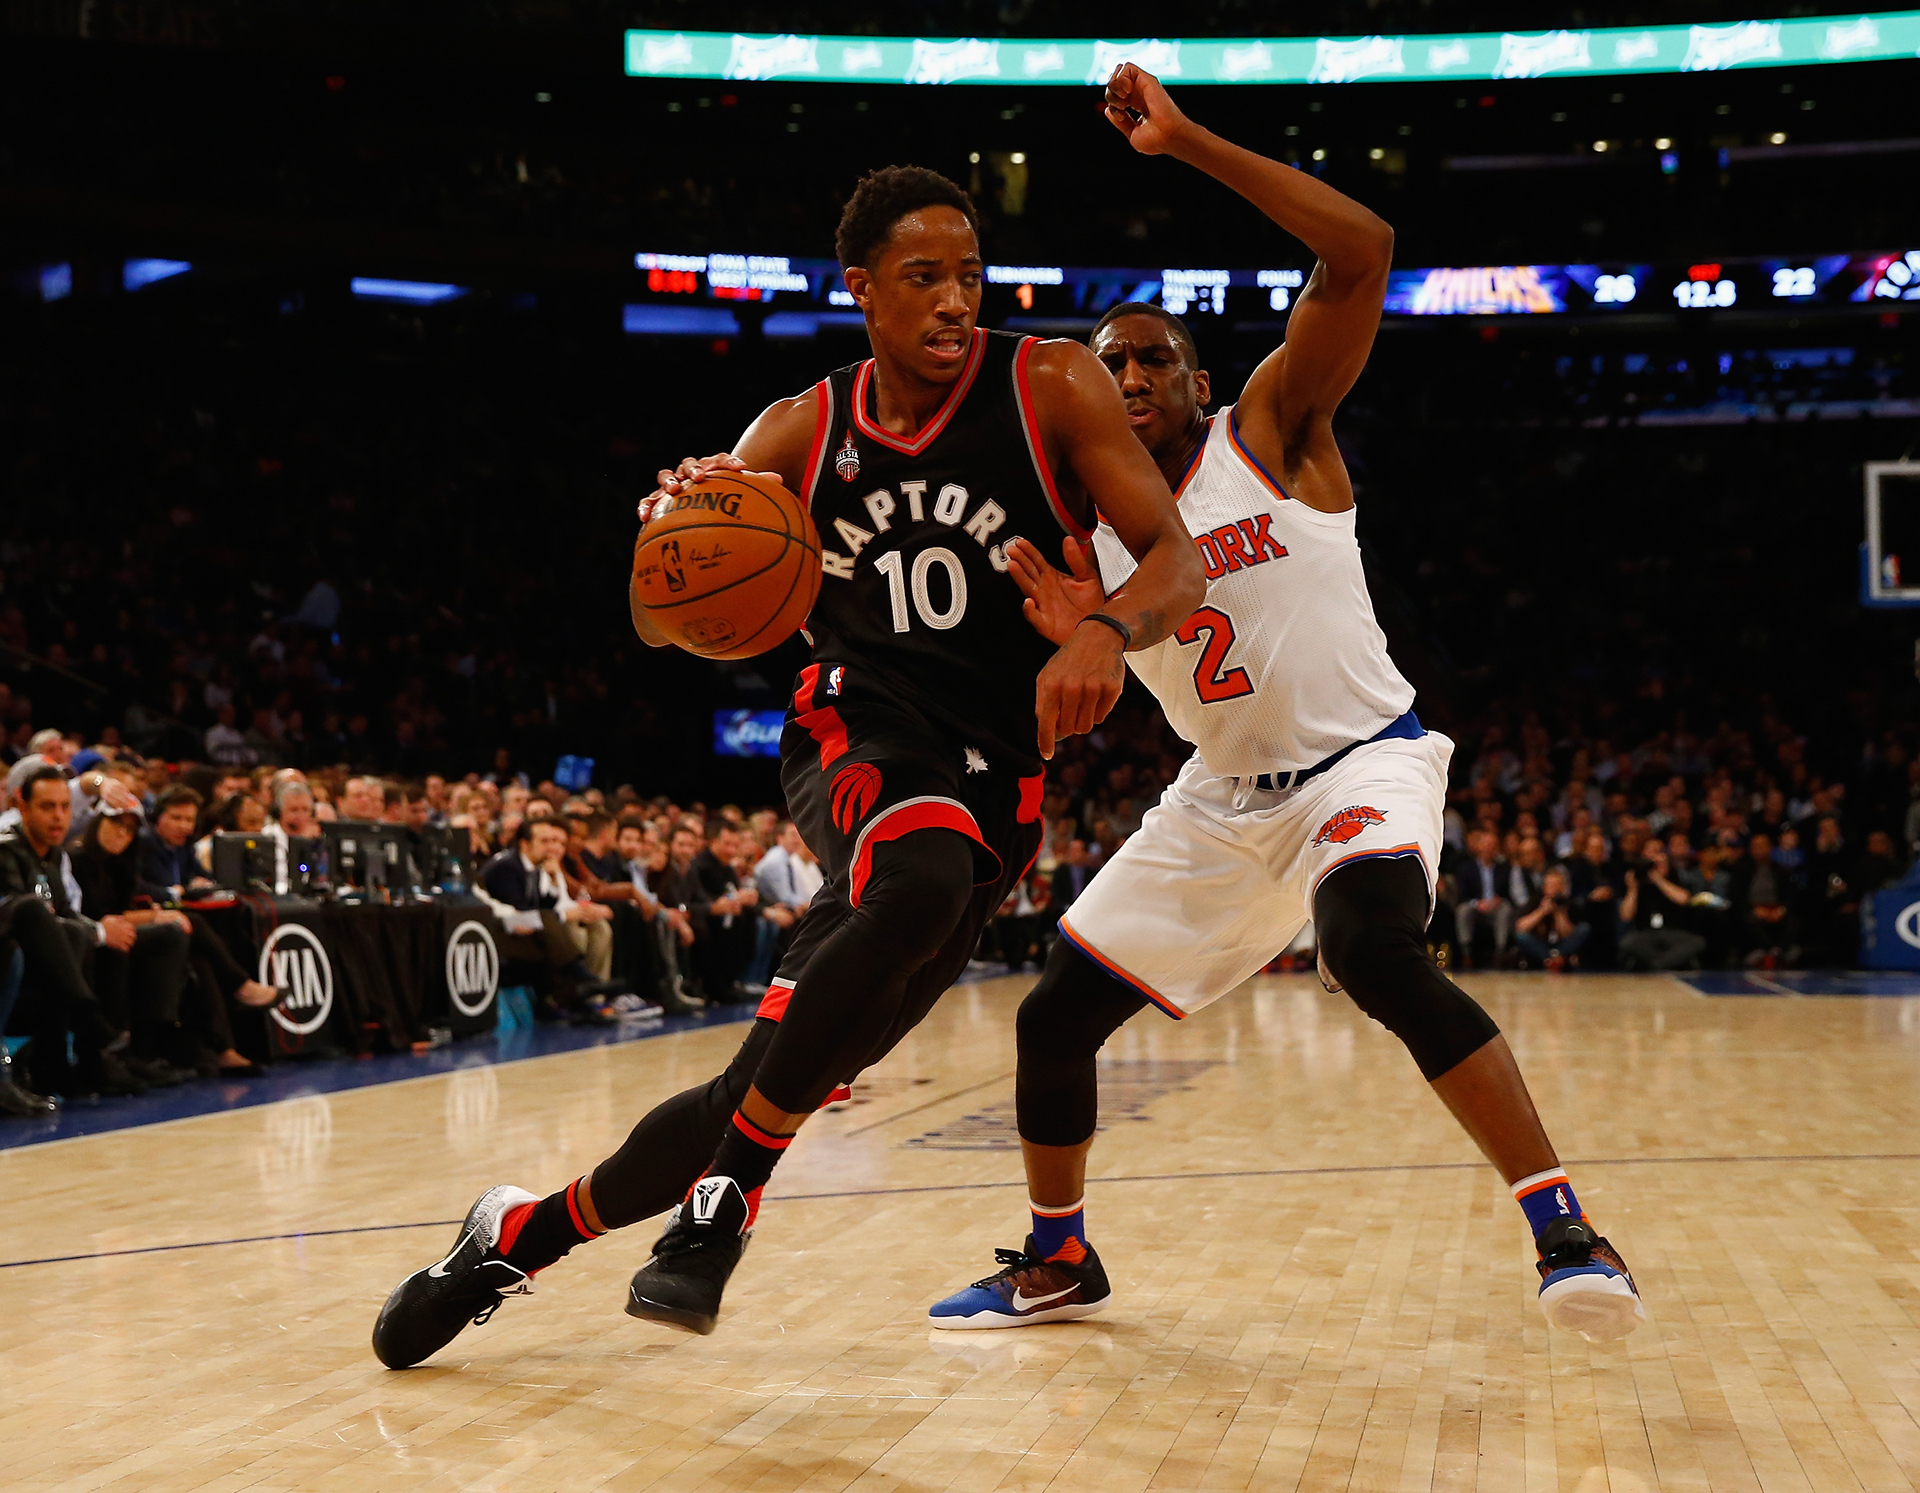 After promising start, Raptors fall to Knicks 108-100